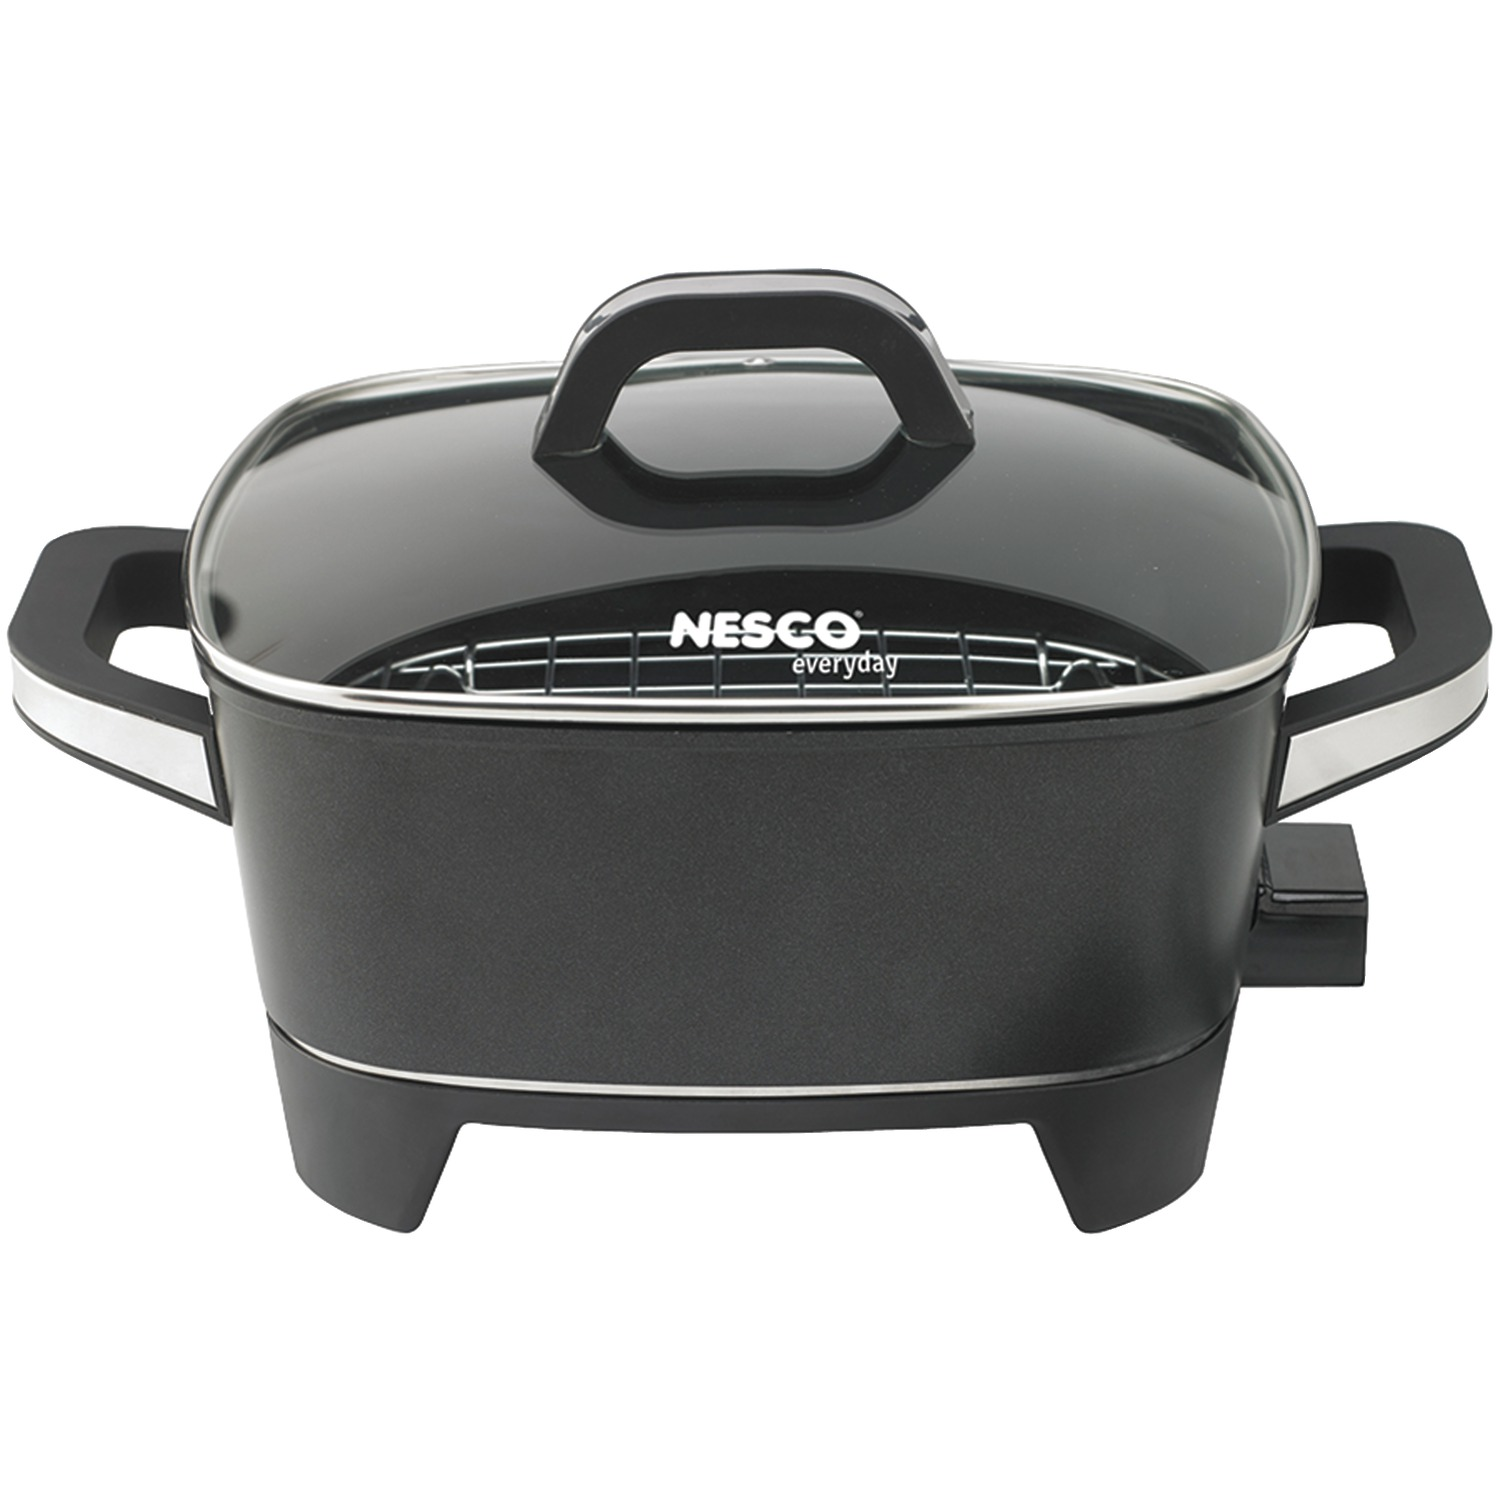 "Nesco ES-12 12"" Electric Skillet"